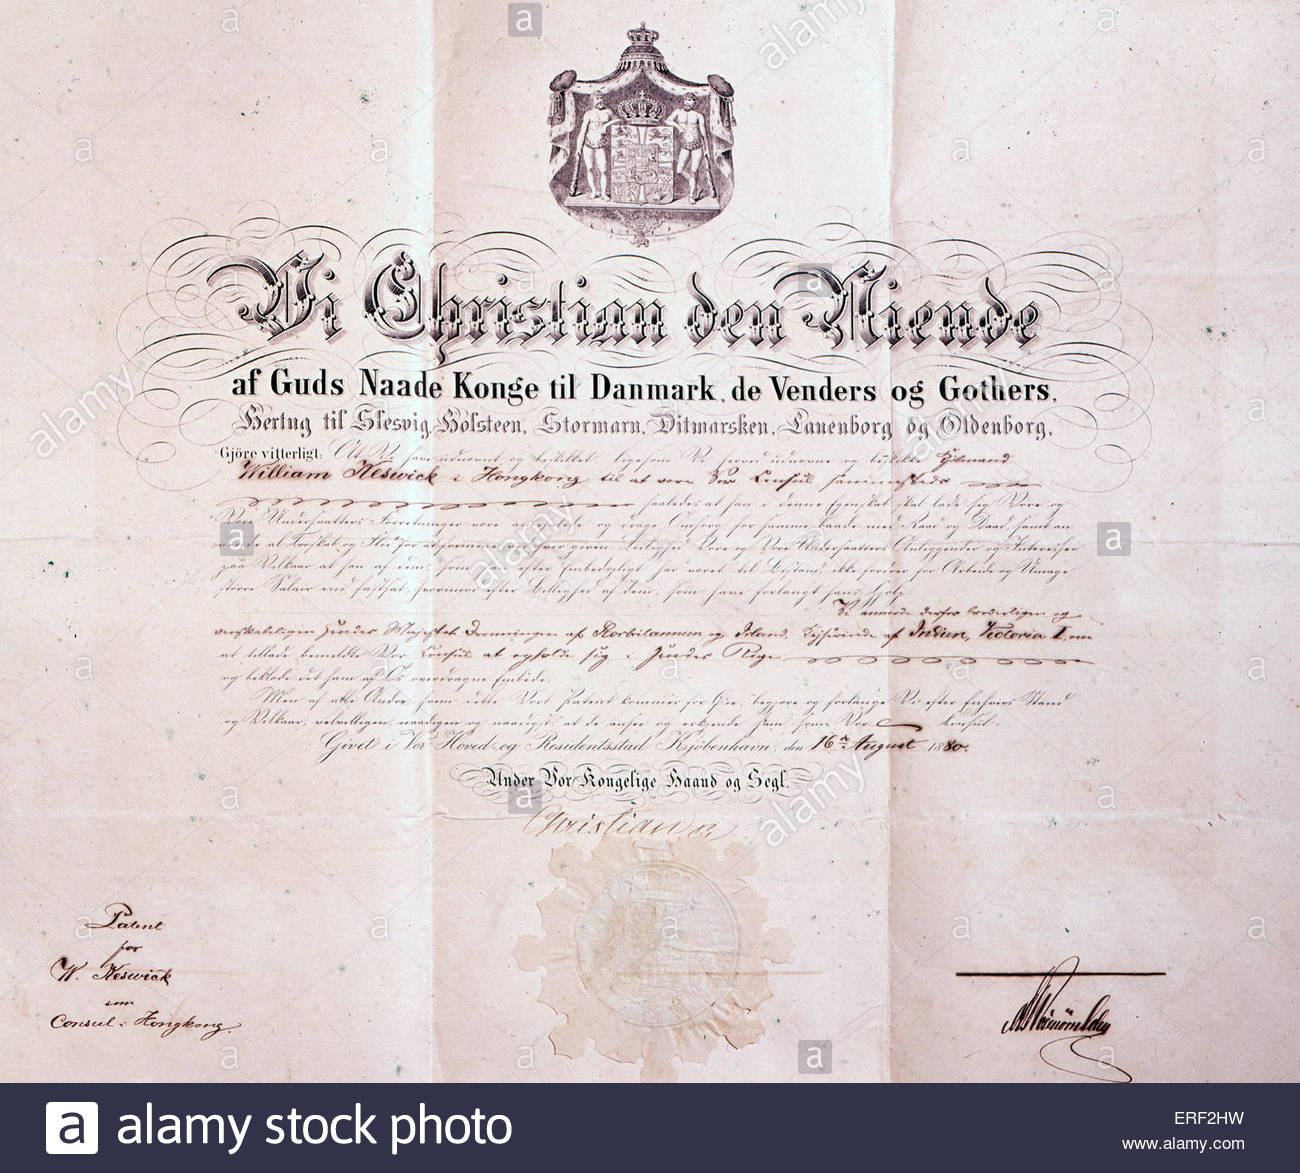 Patent signed by Christian IX of Denmark - appointing William Keswick as Danish consul in Hong Kong, China, 1880. - Stock Image